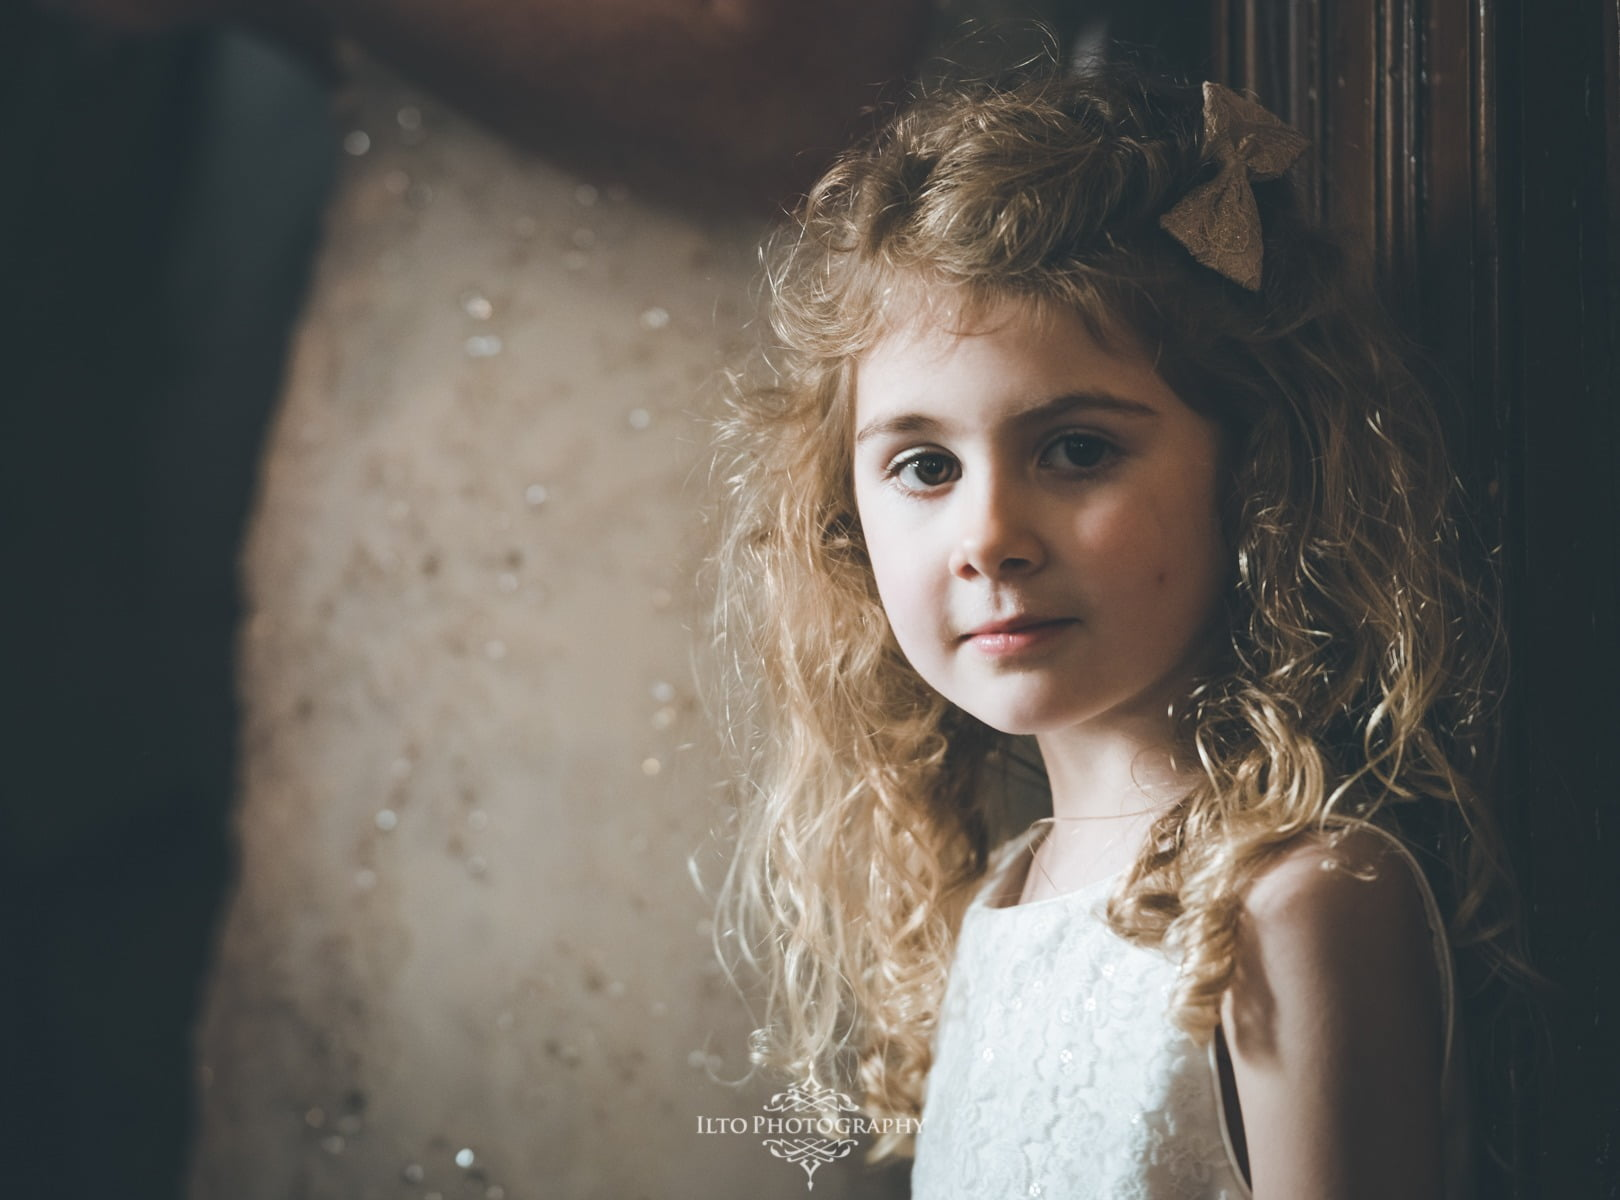 Pretty flower girl stands in natural light and shade.